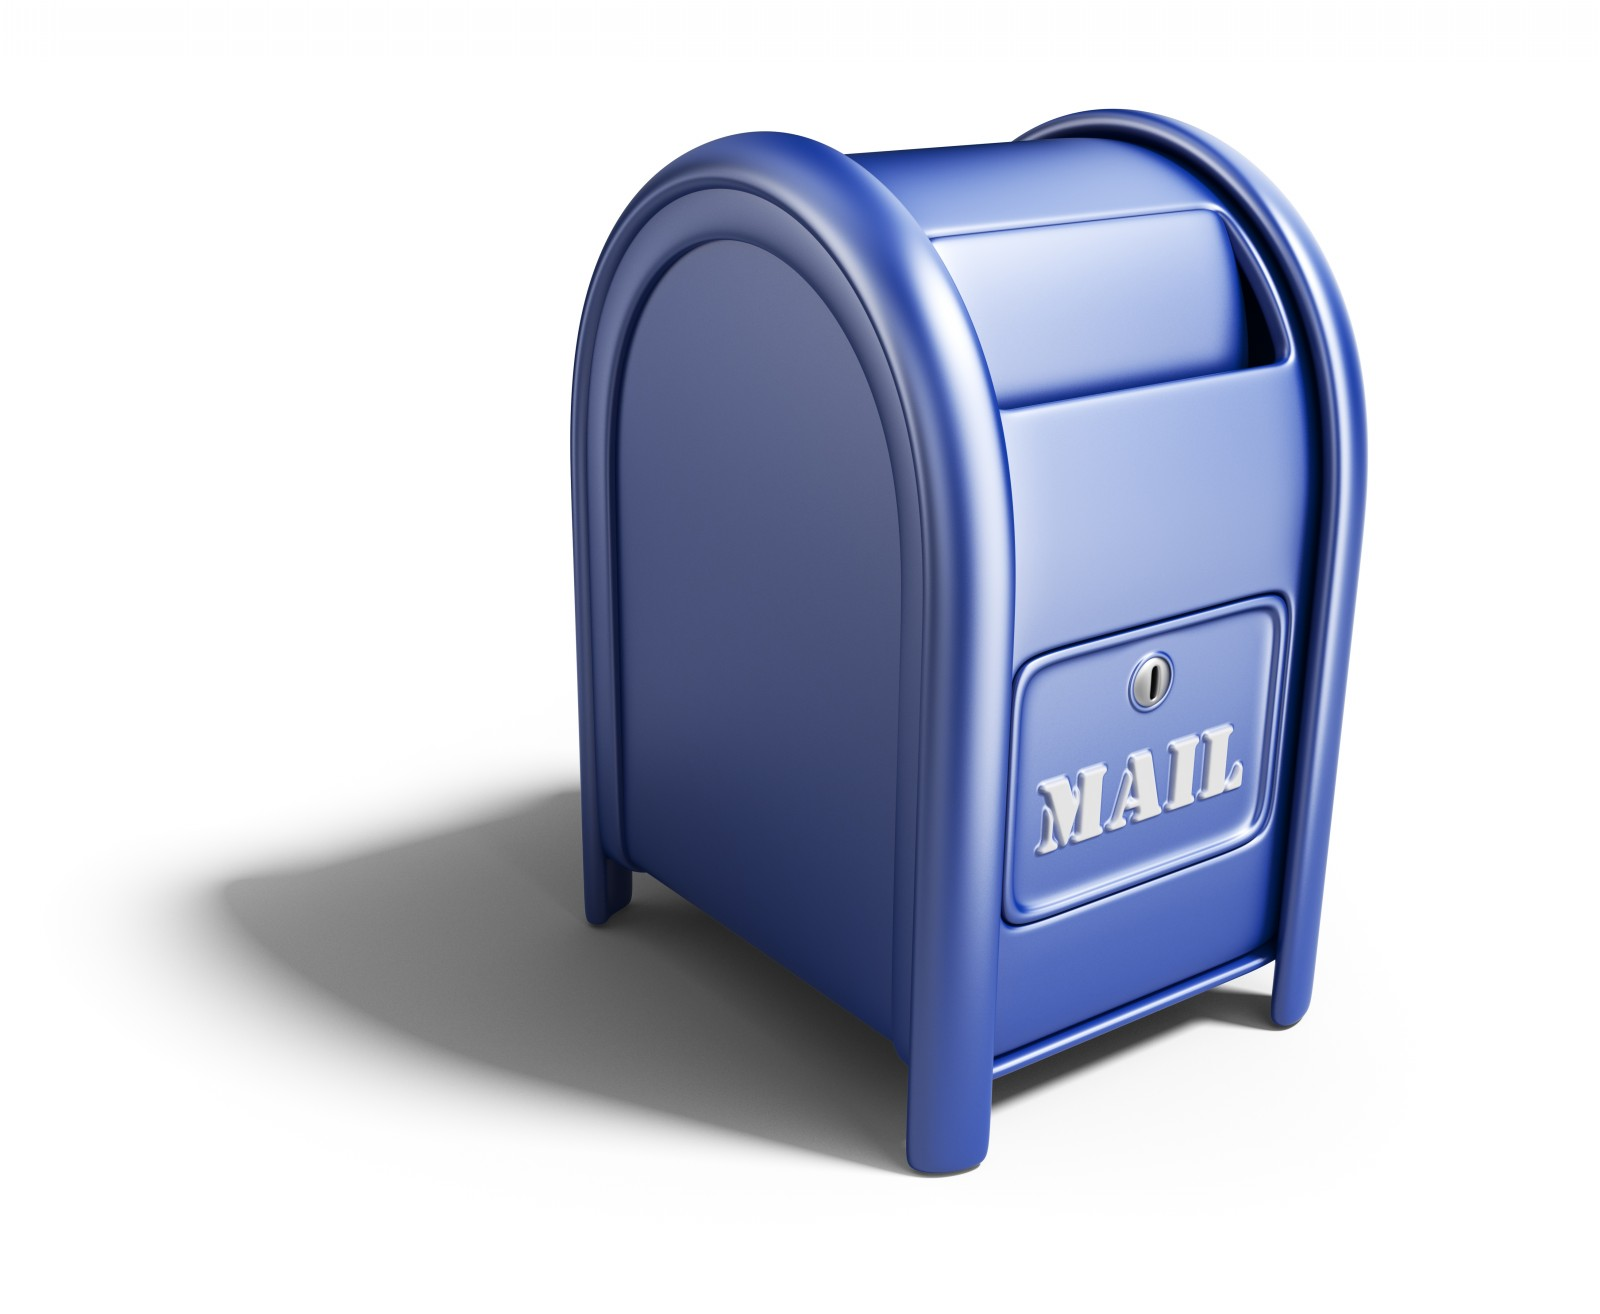 Png Icon Mail Box Free image #20504